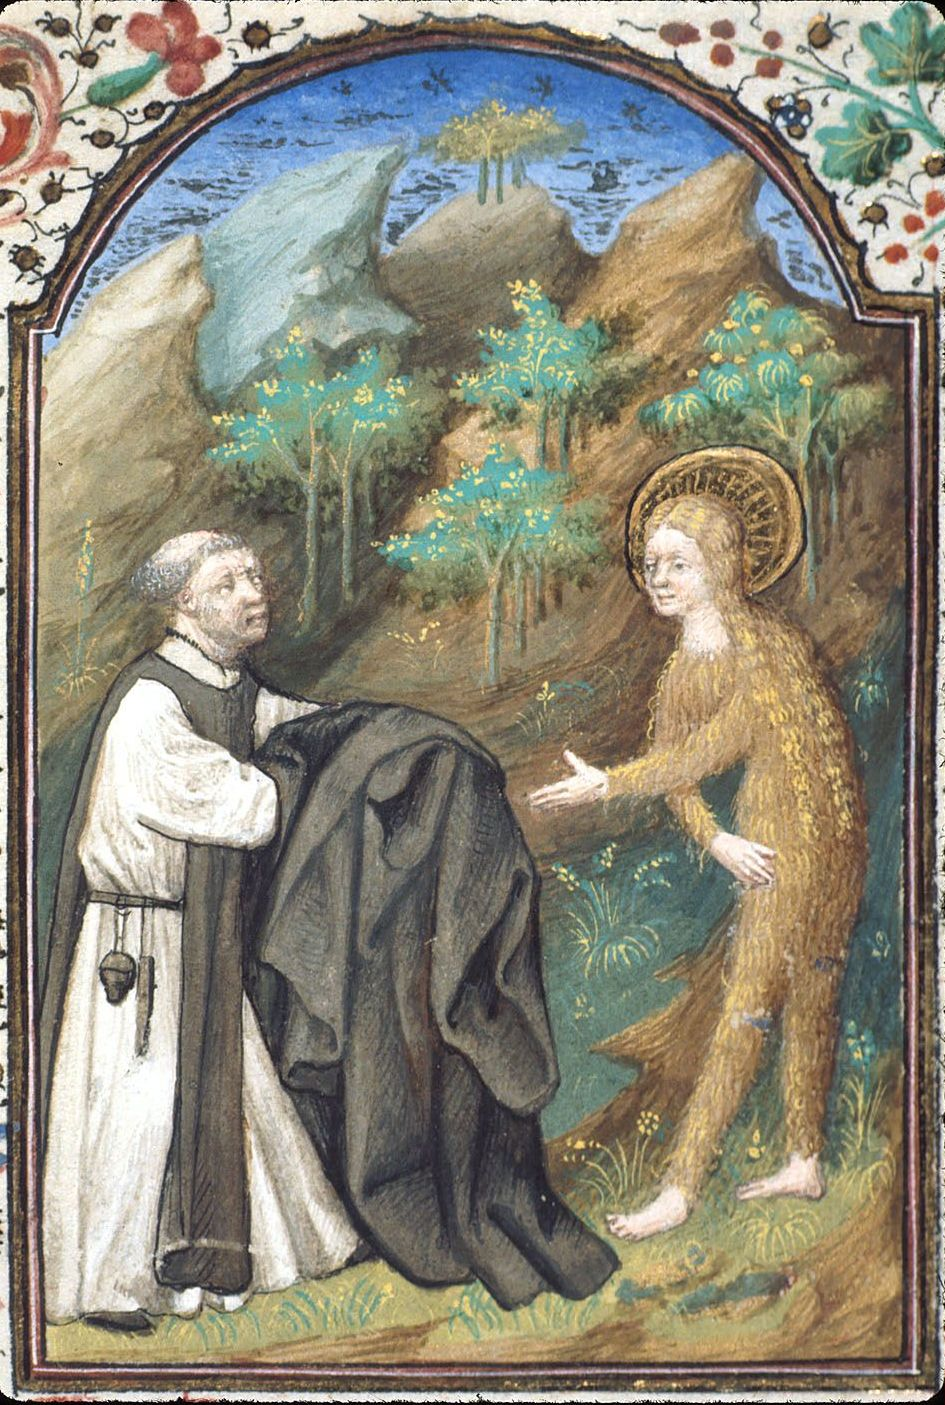 Mary of Egypt, covered in hair, receives a cloak from the monk Zosimus